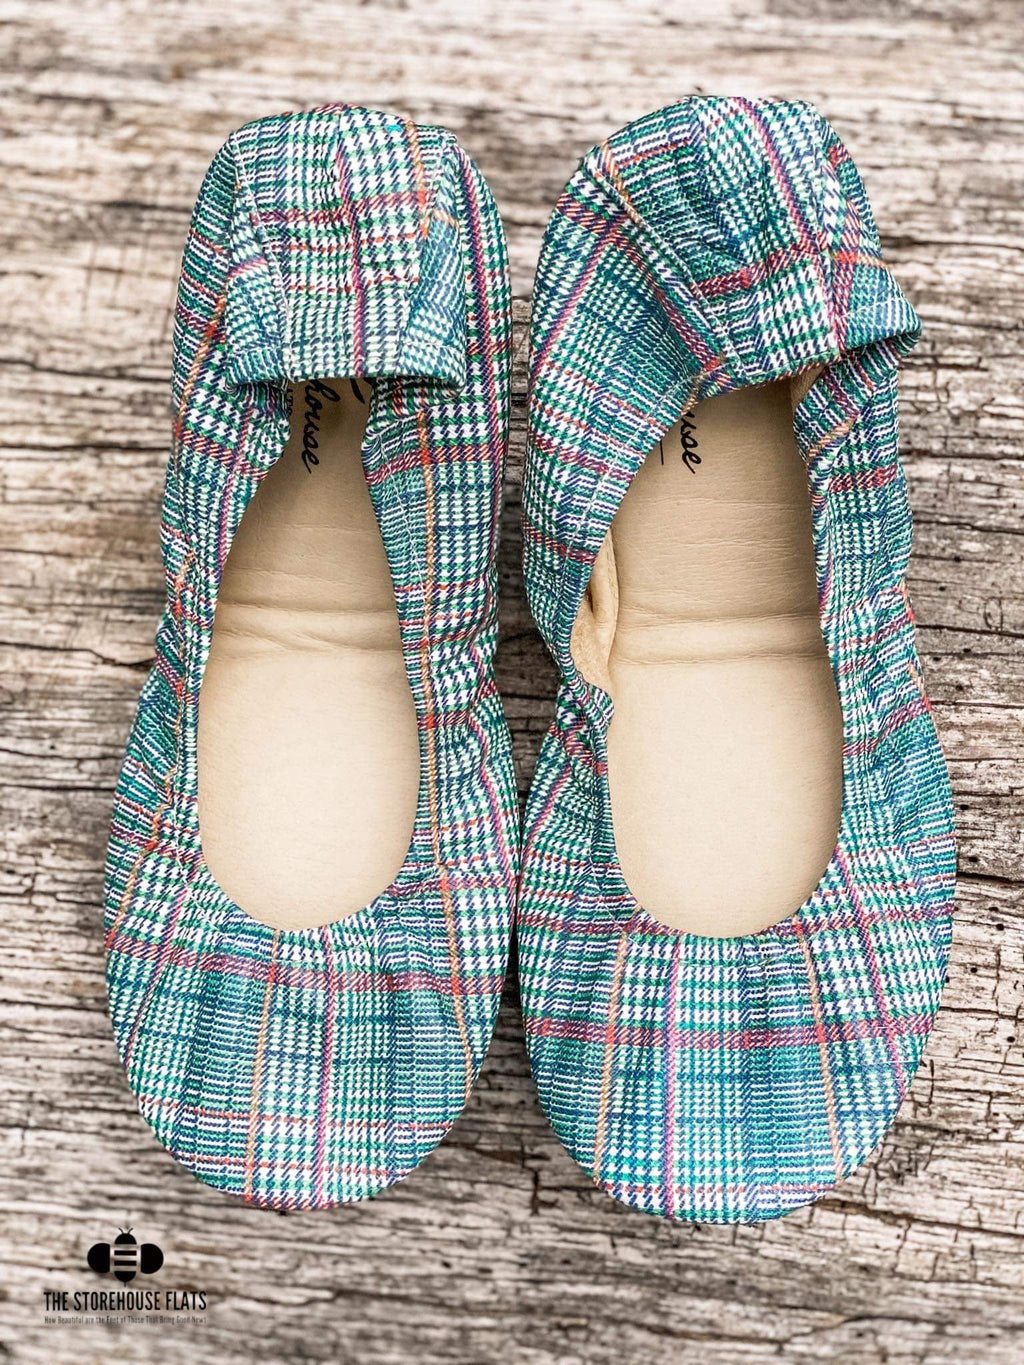 Merry Mistletoe Storehouse Flats September Preorder ---Arrives 6-8 weeks from 9/6 - Feather & Quill Boutique